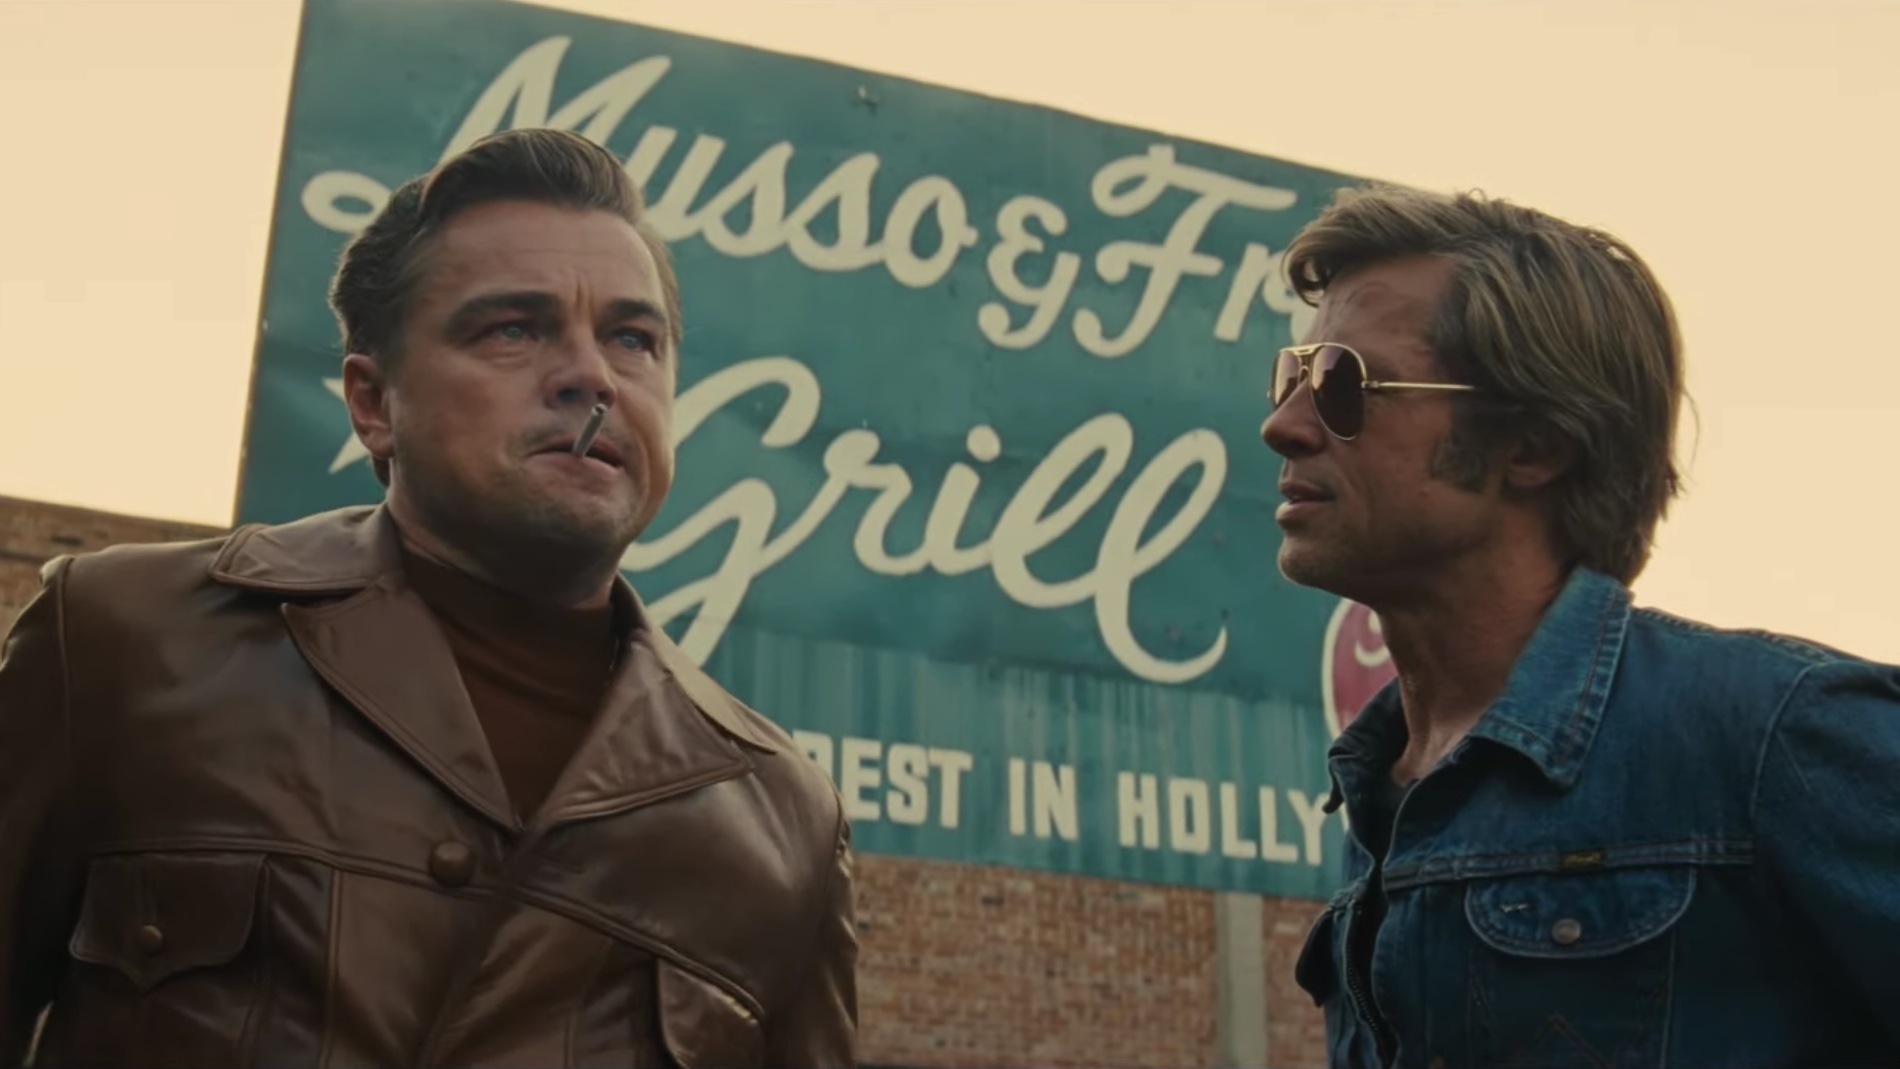 brad pitt, leonardo dicaprio, once upon a time in hollywood, manson, manson murders, cults, quentin tarantino,